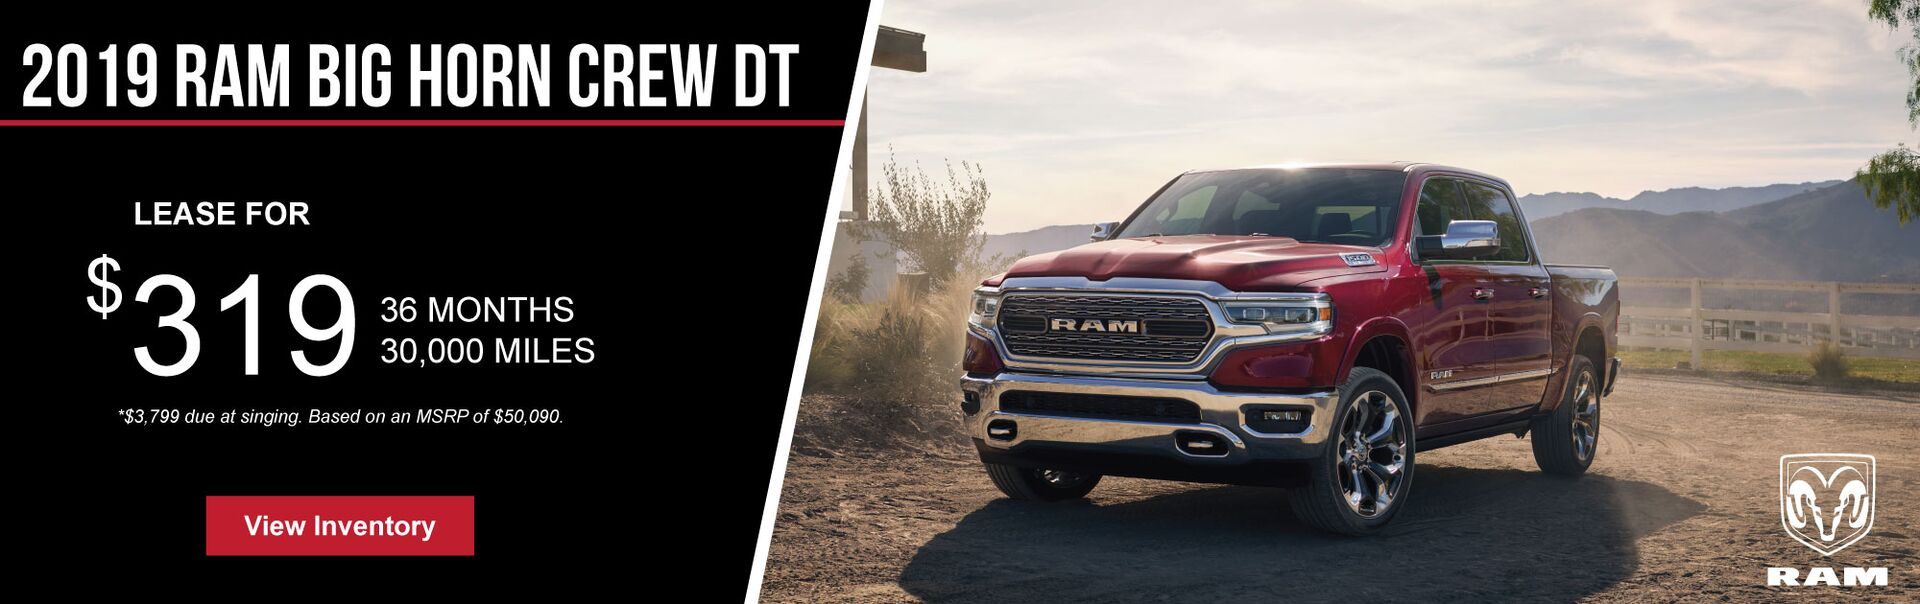 2019 Ram Lease Offer